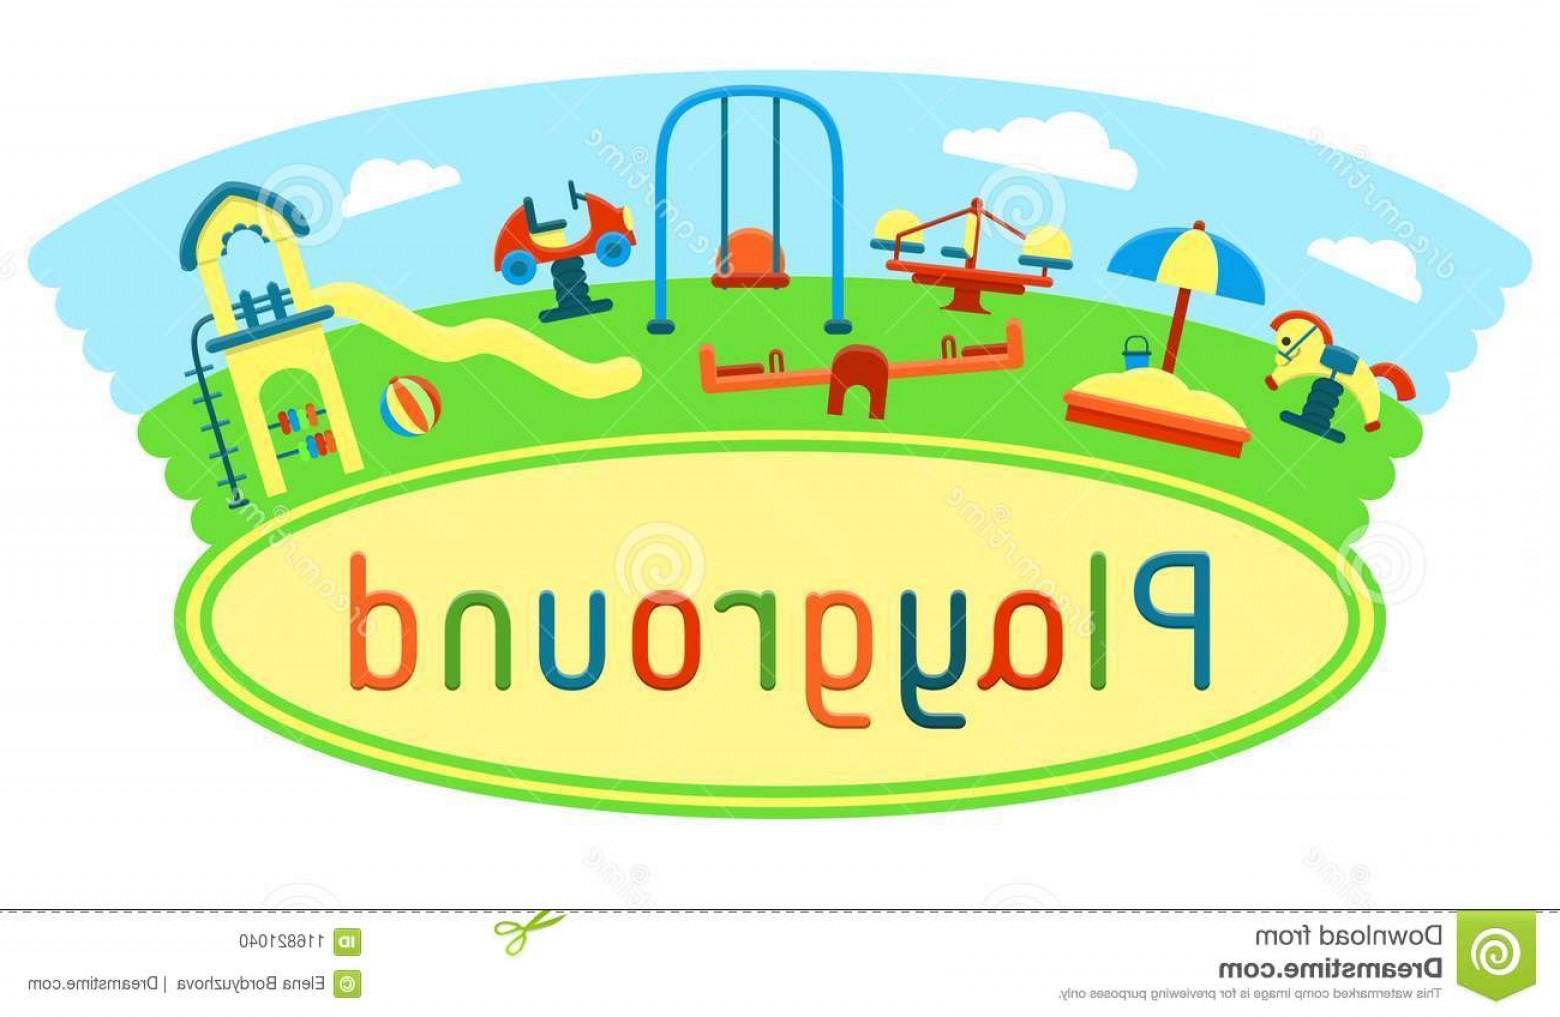 Playground Equipment Vector Art: Outdoor Card Kids Playground Equipment Flat Style Vector Illustration Suitable Childrens Book Eps Outdoor Card Kids Image